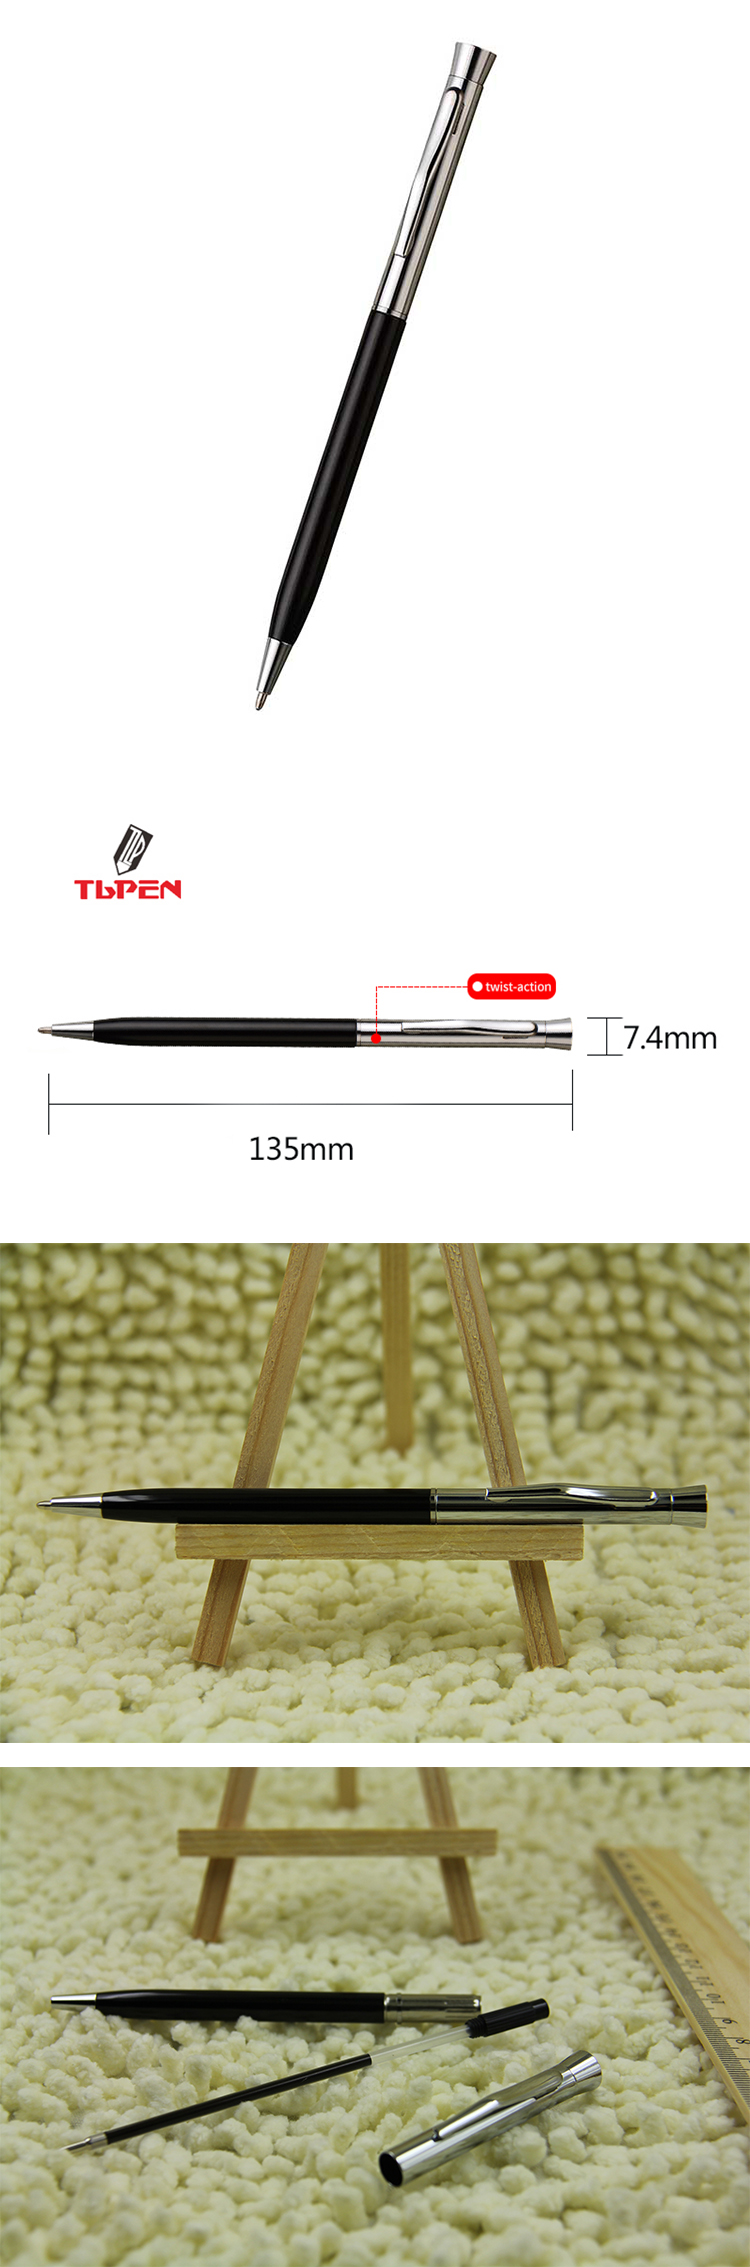 Copper and stainless steel pen bareel twist mechanism ball point pen with logo